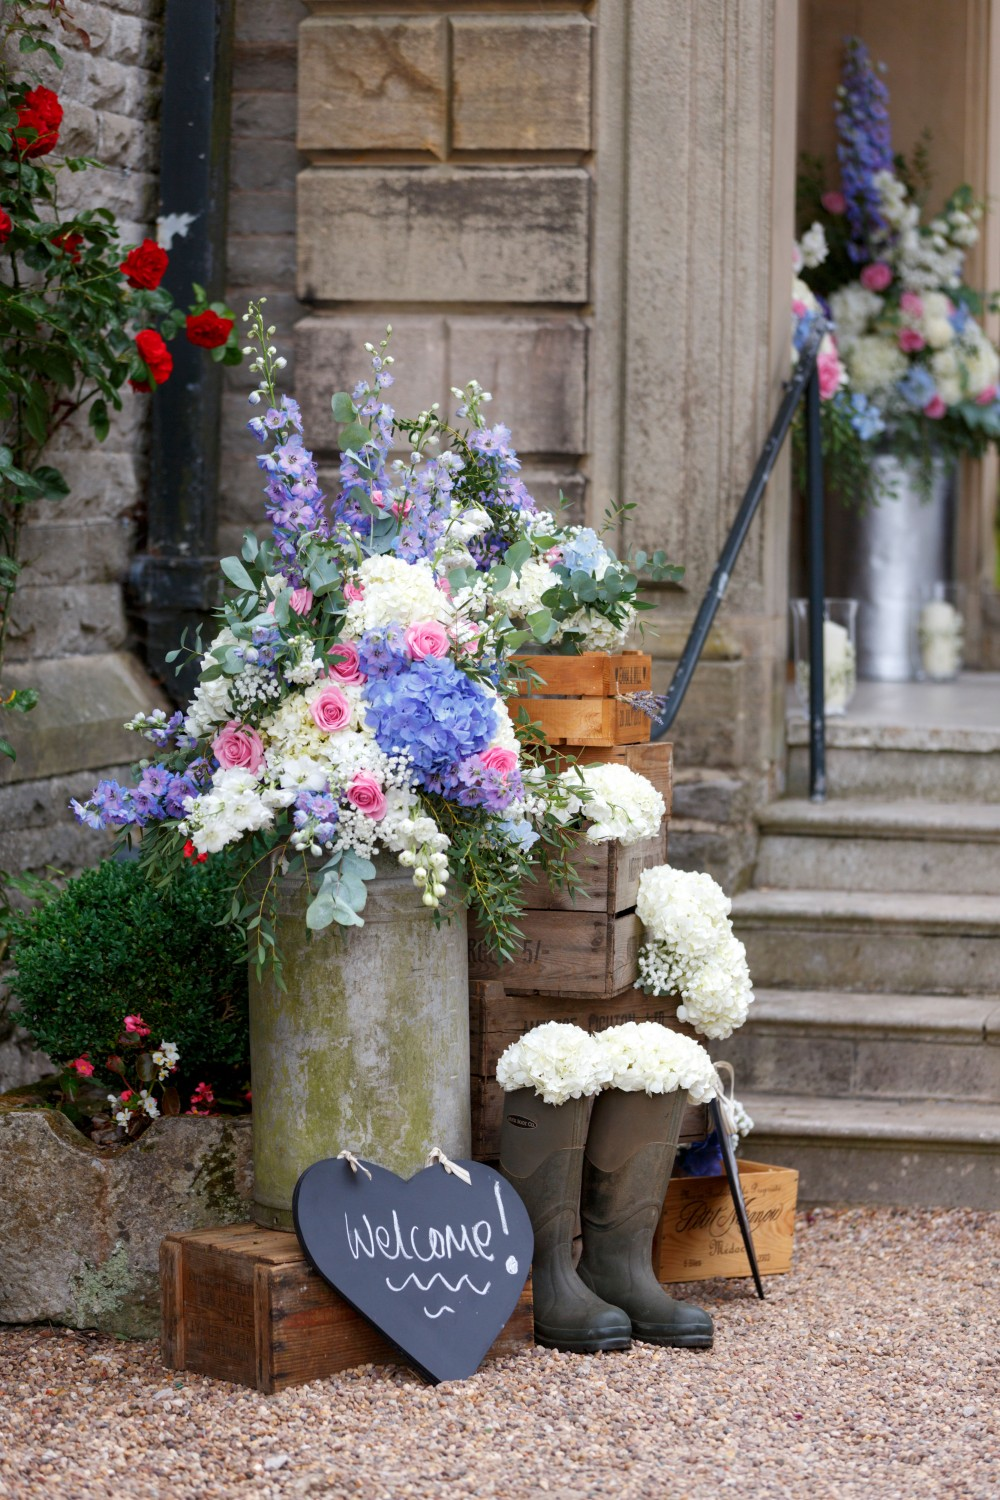 We Were Delighted To Provide The Wedding Flowers At Callow Hall Derbyshire For Summer Of Emma And Will In July